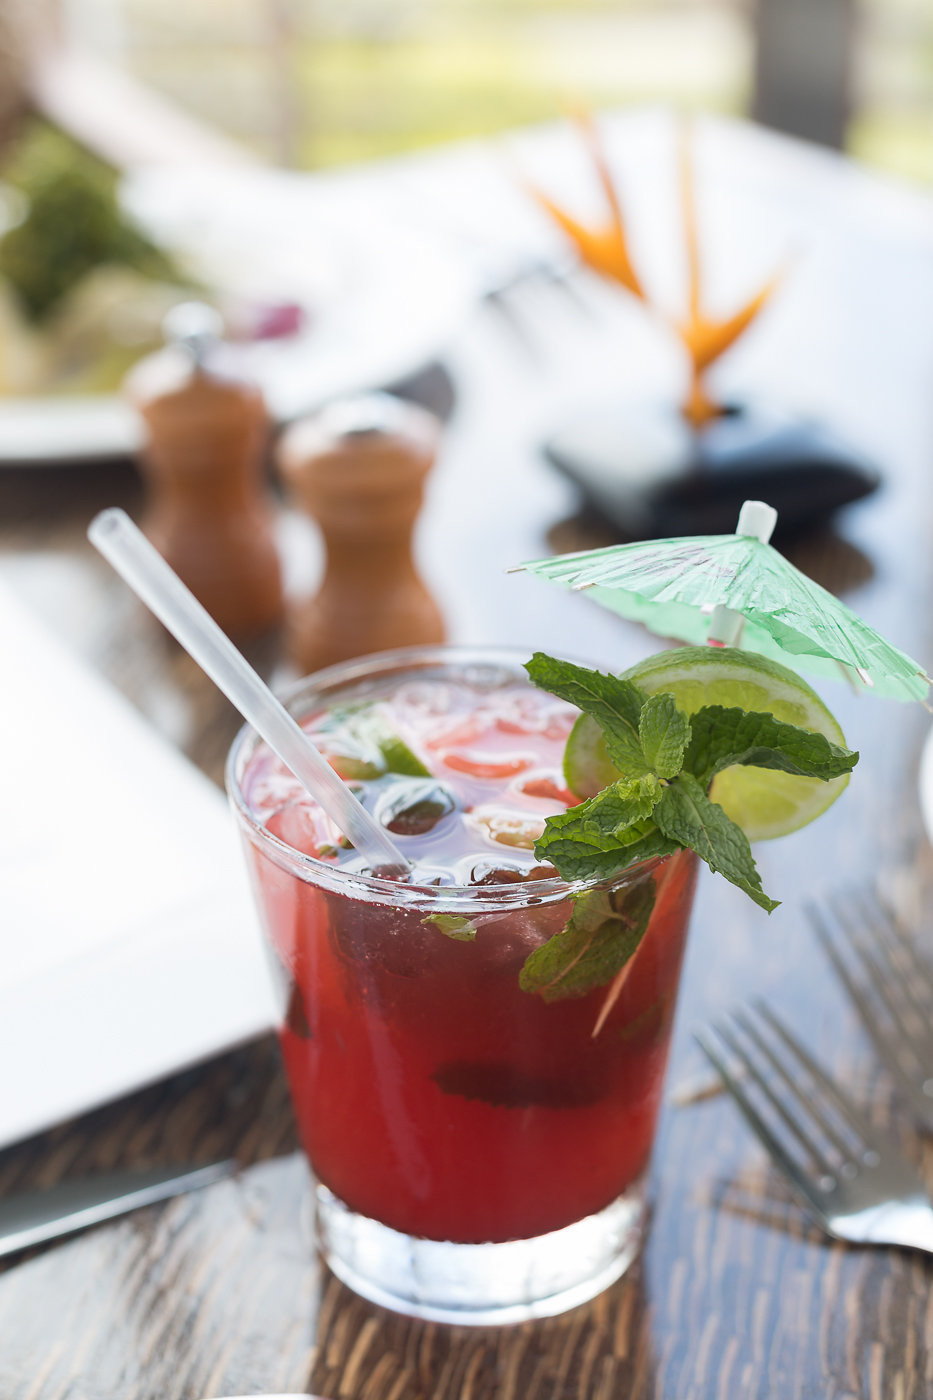 cocktails craft cocktail Drink Food + Drink gourmet Hotels mixology Romance Tropical table cup cocktail alcoholic beverage food non alcoholic beverage mojito mai tai plant mint julep produce